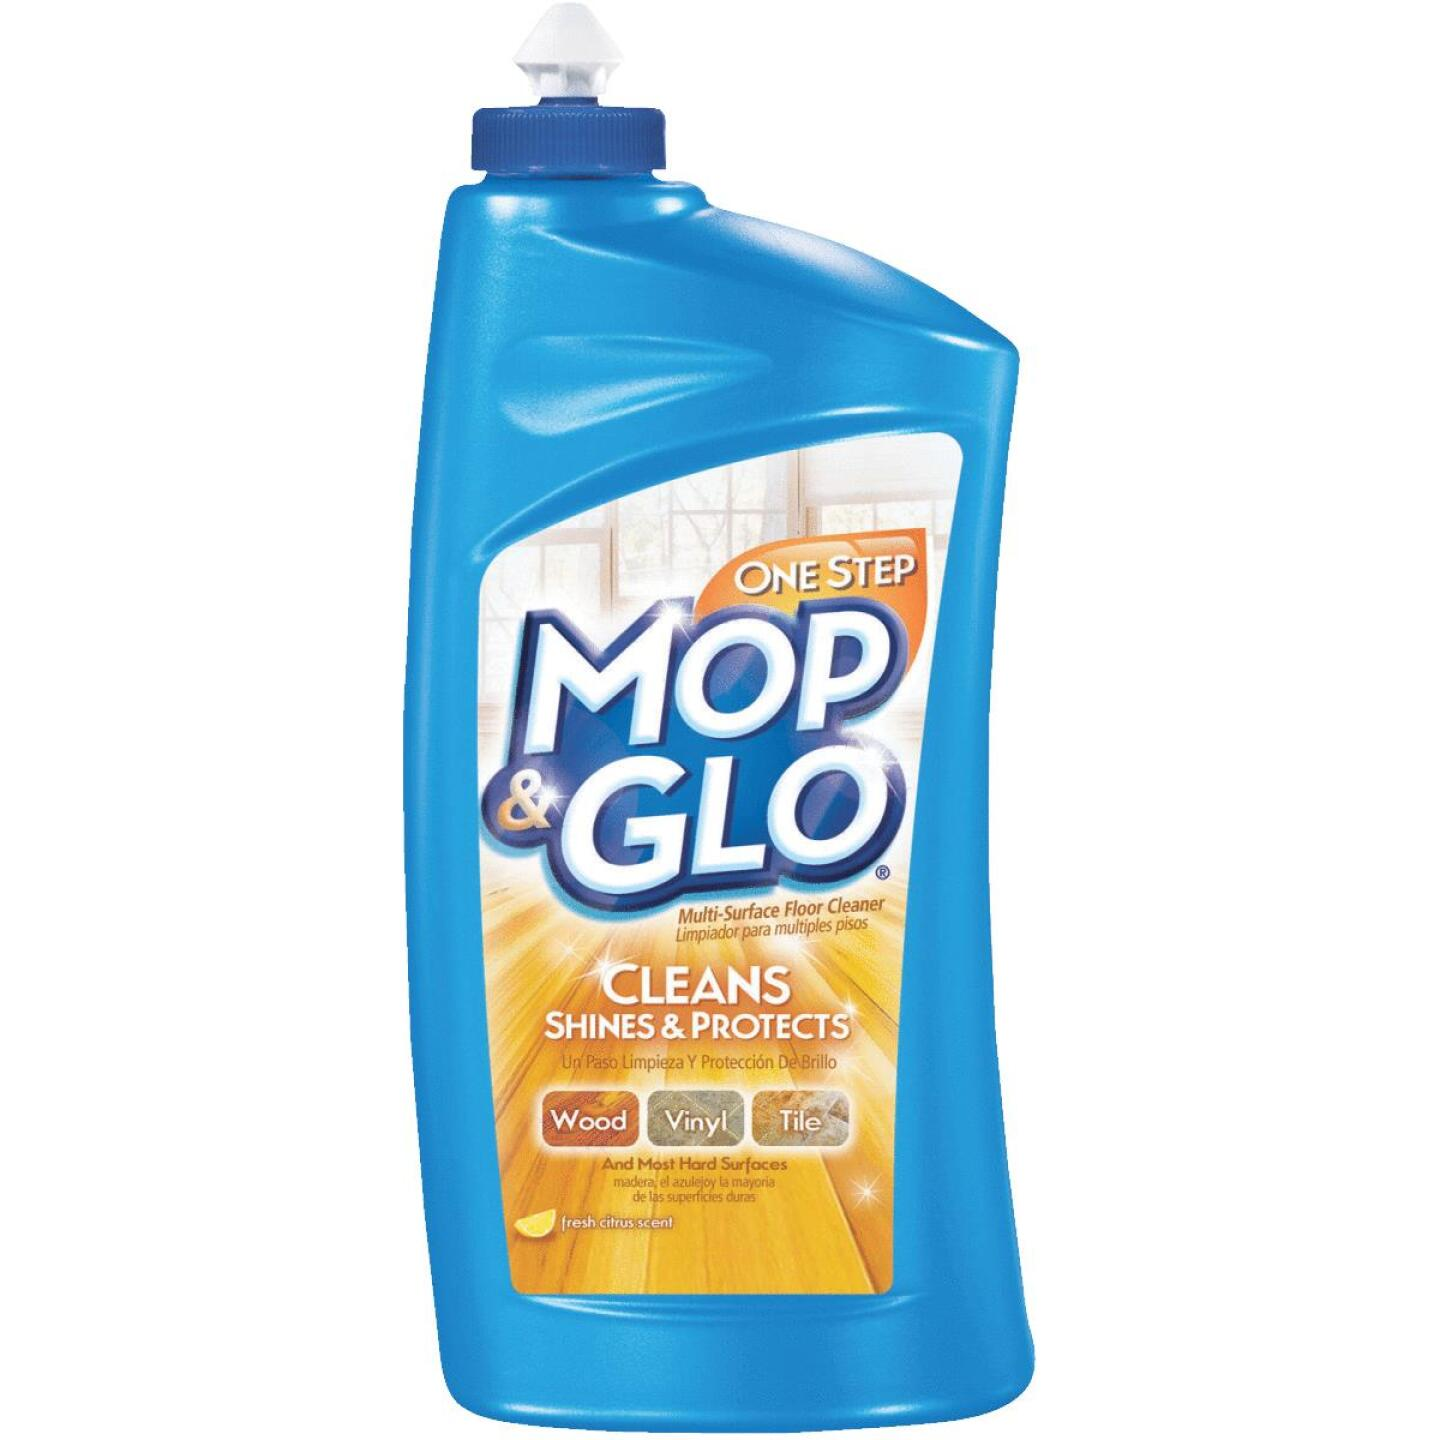 Mop & Glo 32 Oz. Multi-Surface Floor Cleaner Image 1